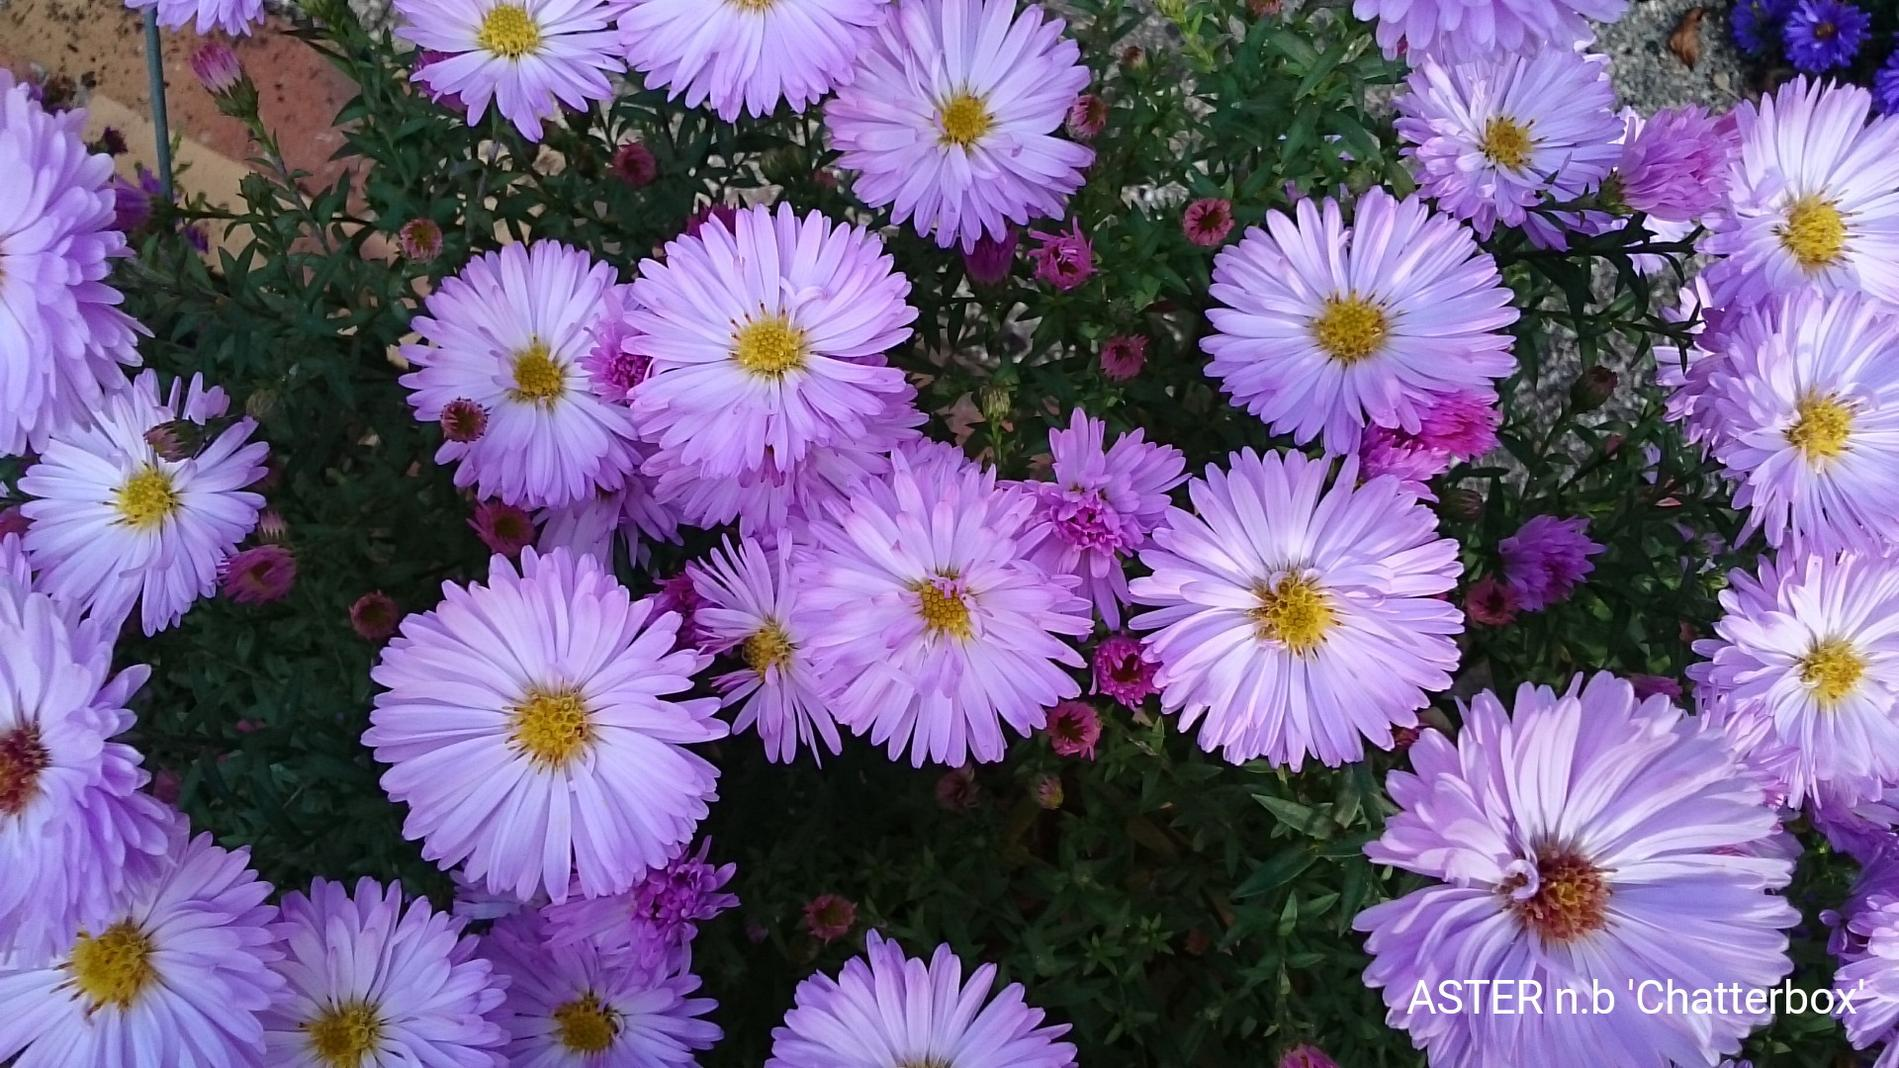 ASTER n.b 'Chatterbox'